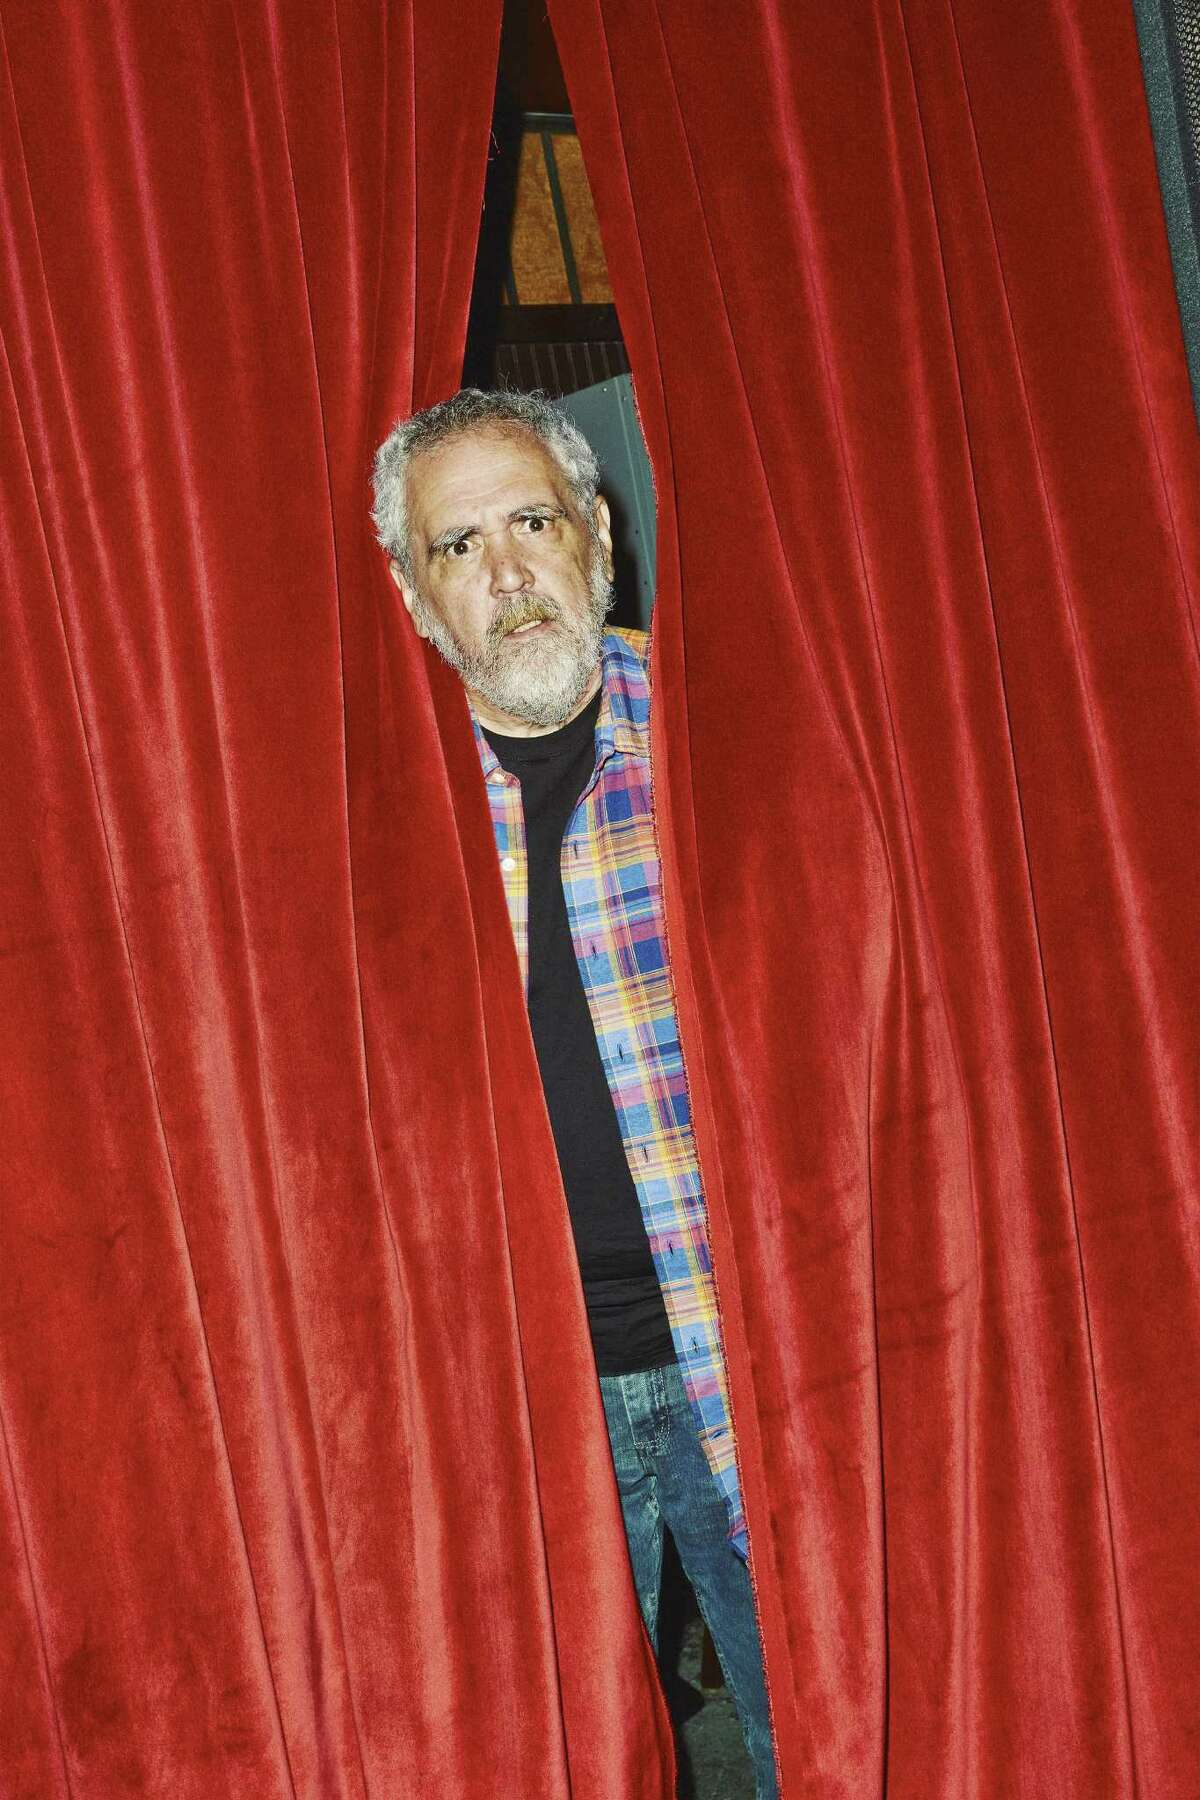 -- PHOTO MOVED IN ADVANCE AND NOT FOR USE - ONLINE OR IN PRINT - BEFORE AUG. 02, 2015. -- Barry Crimmins, a comedian, at Union Hall in New York, June 24, 2015. Crimmins and his longtime friend Bobcat Goldthwait have created a documentary,